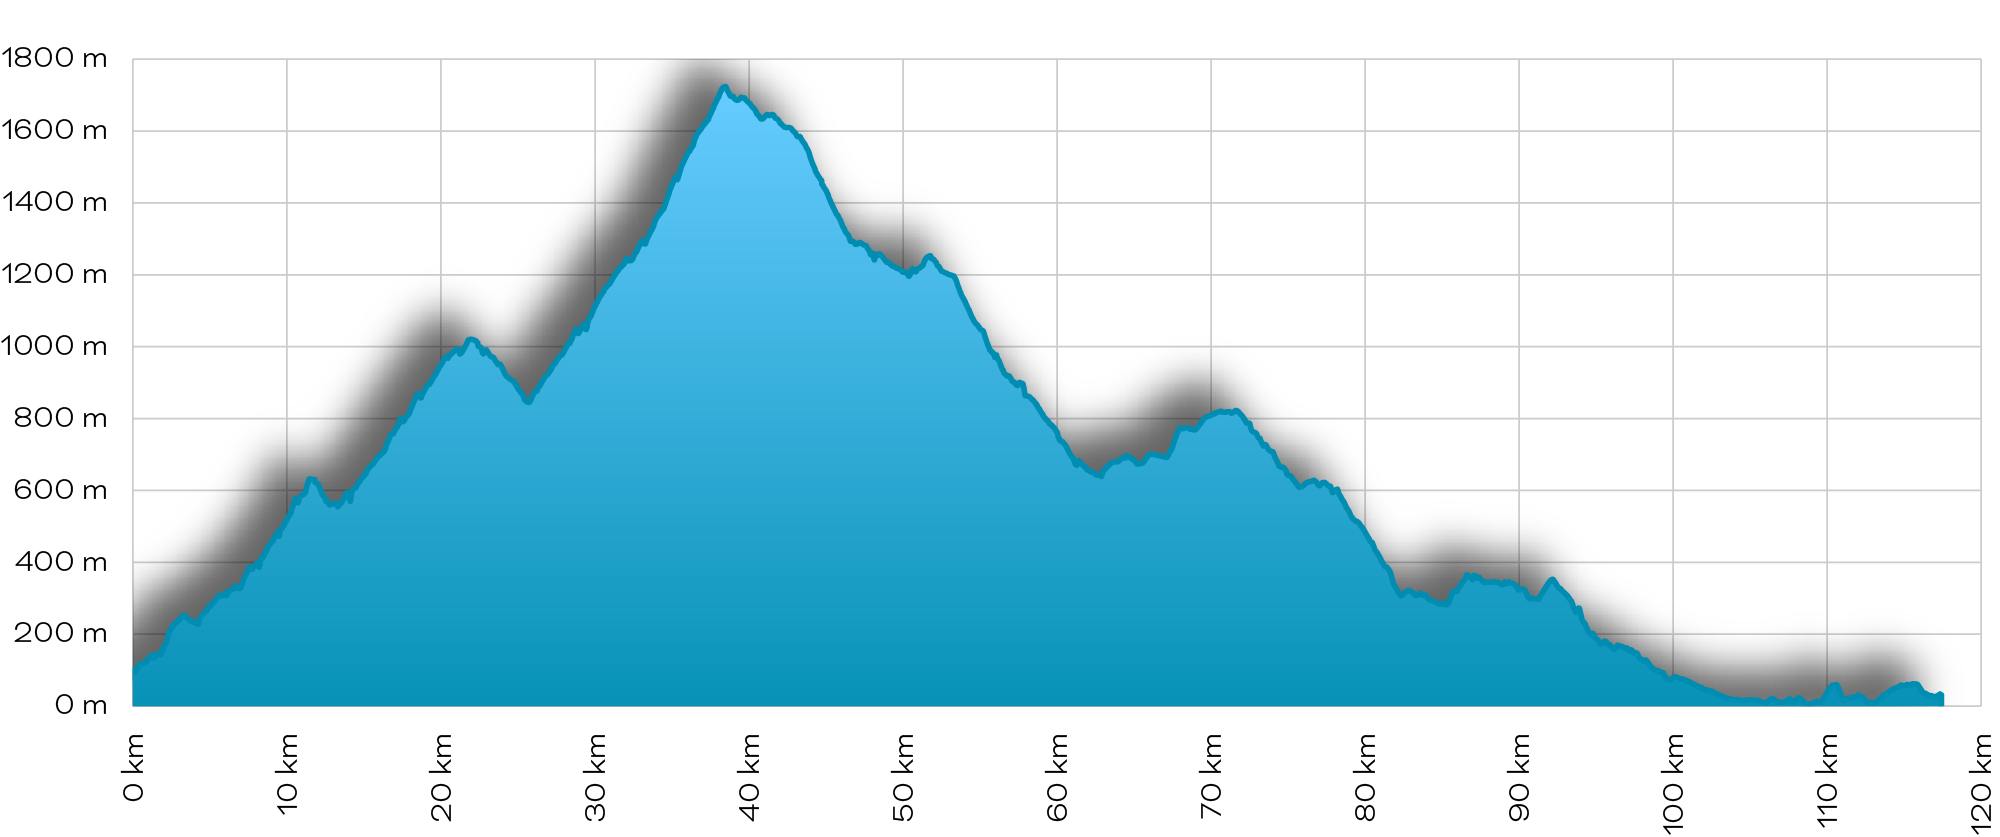 Valley of blossom - elevation profile